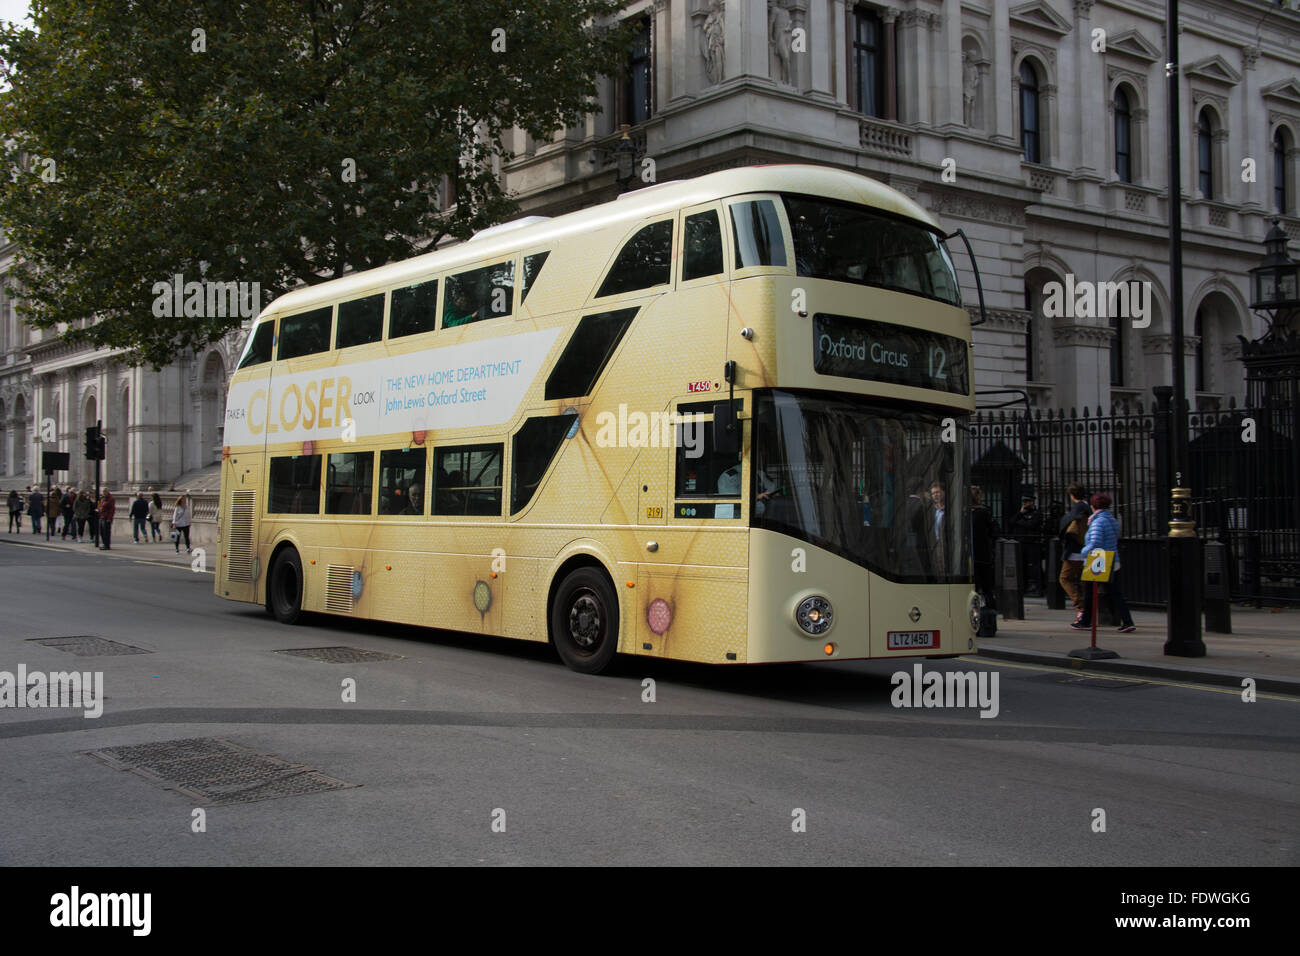 A new London Routemaster bus is coverd in an advert for the new John Lewis store home department. It is on Route Stock Photo